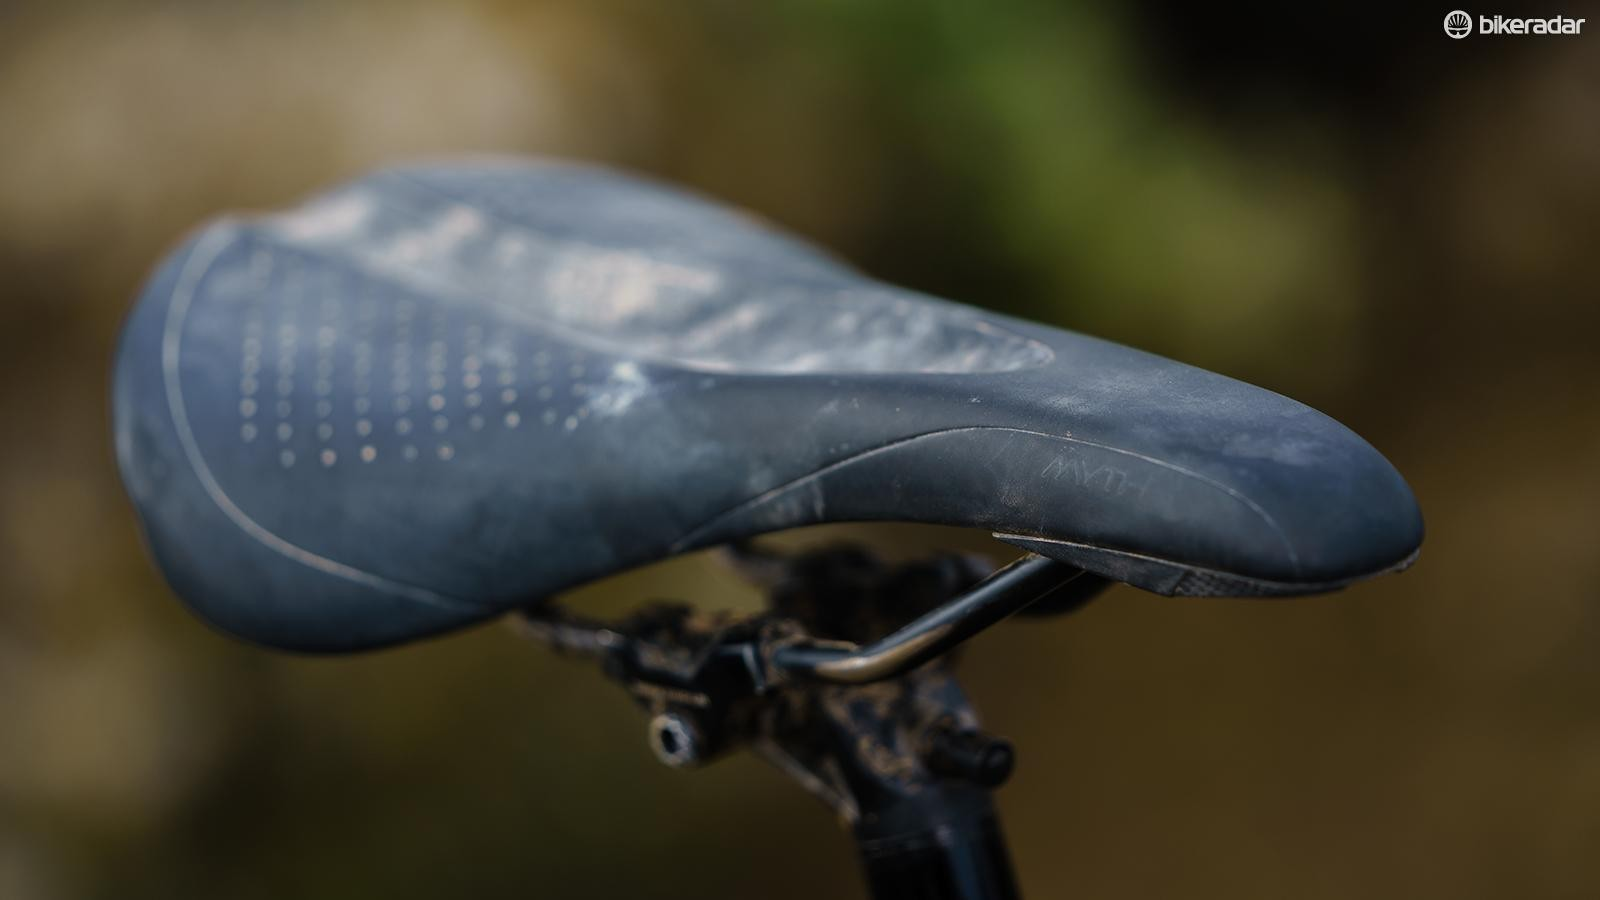 Saddles are personal, but I found the Specialized Myth saddle very comfy